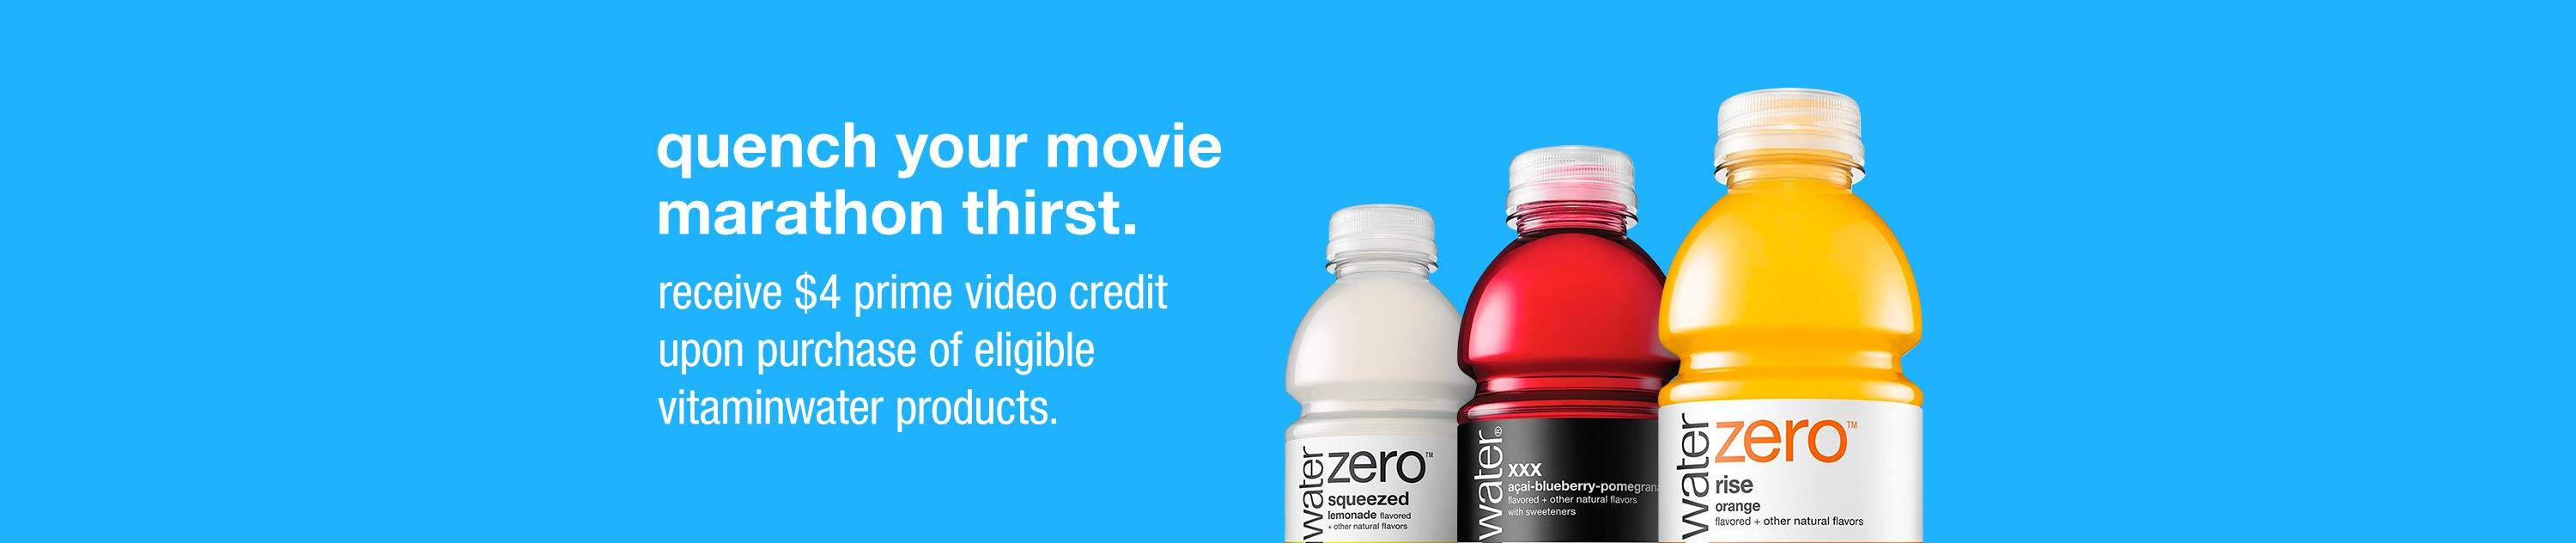 Receive $4 Amazon Prime Video credit upon purchase of eligible vitaminwater products